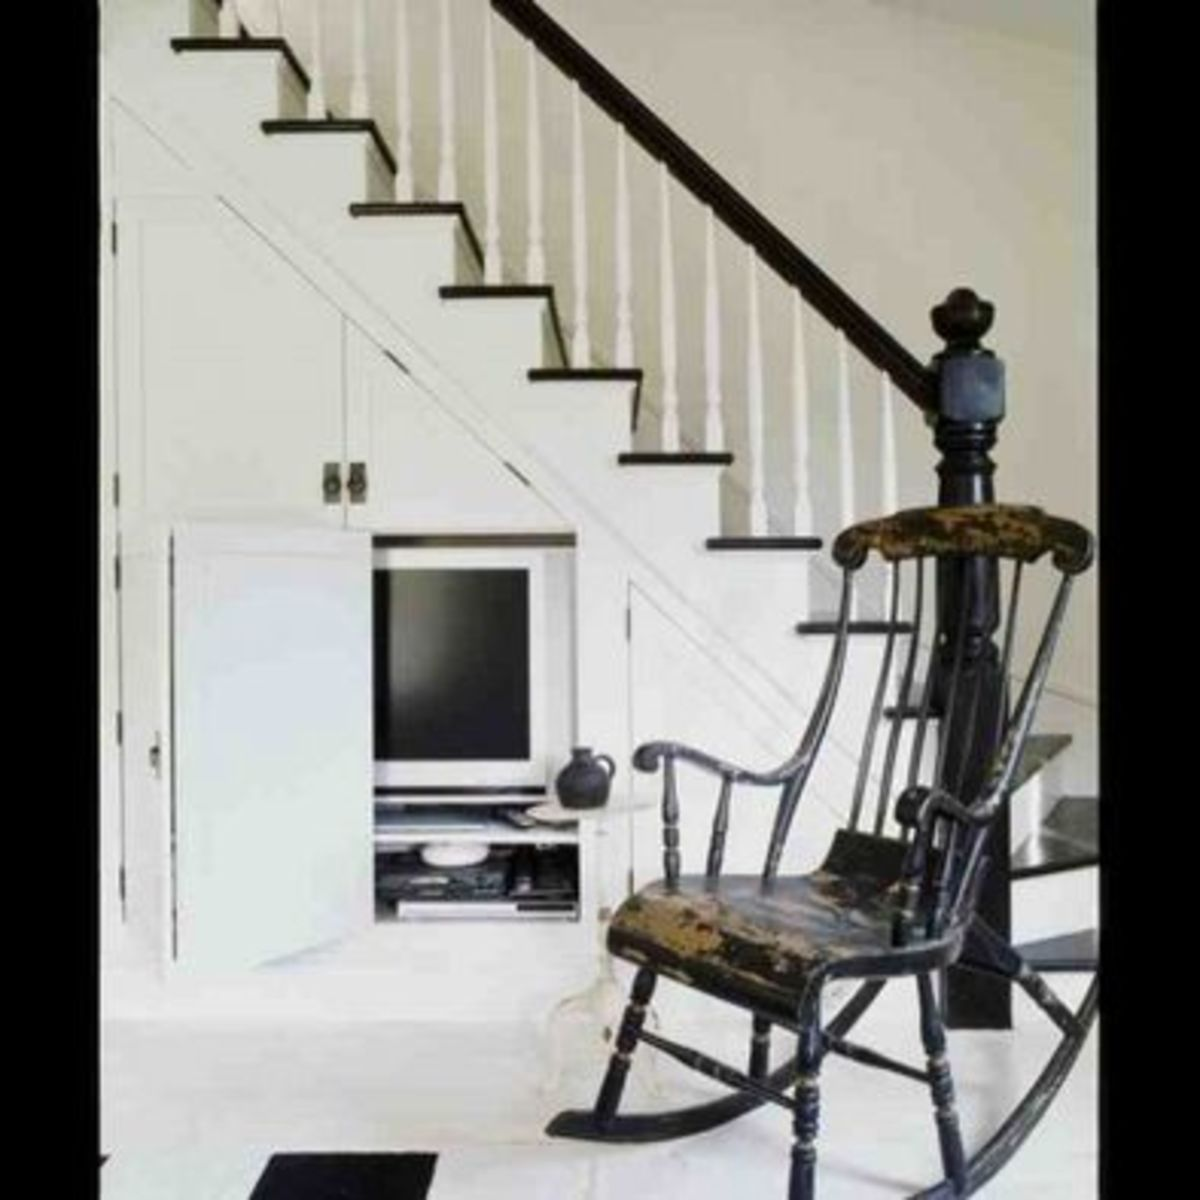 Creative Storage Underneath the Stairs - store and hide your television